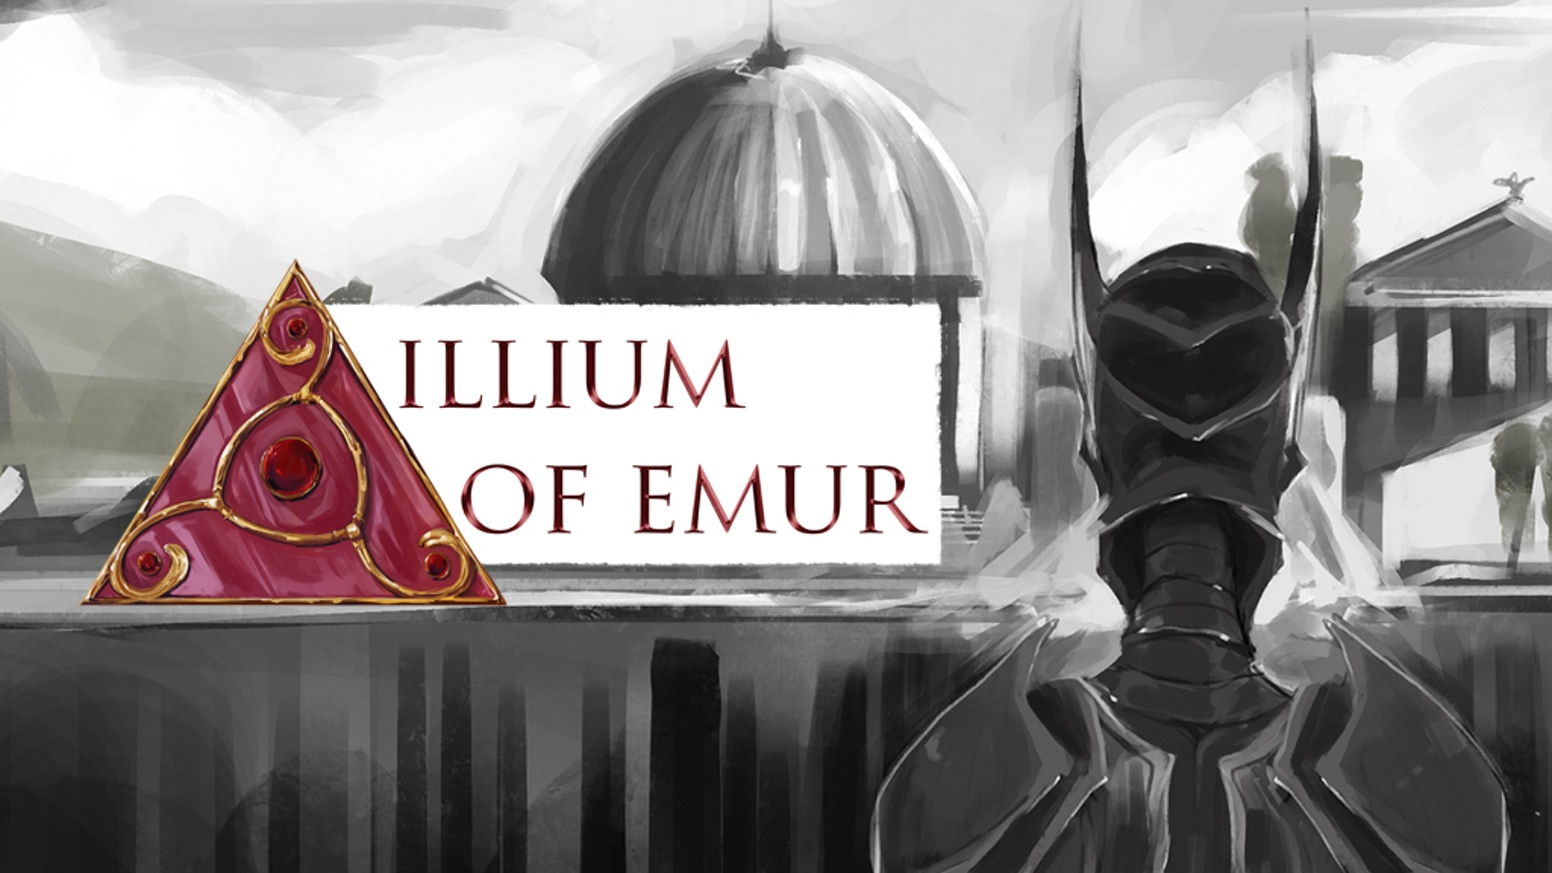 Illium of Emur is a story of gods and greed. Majeir was never chosen to preserve man, but to remove Ara of her god's greatest mistake.